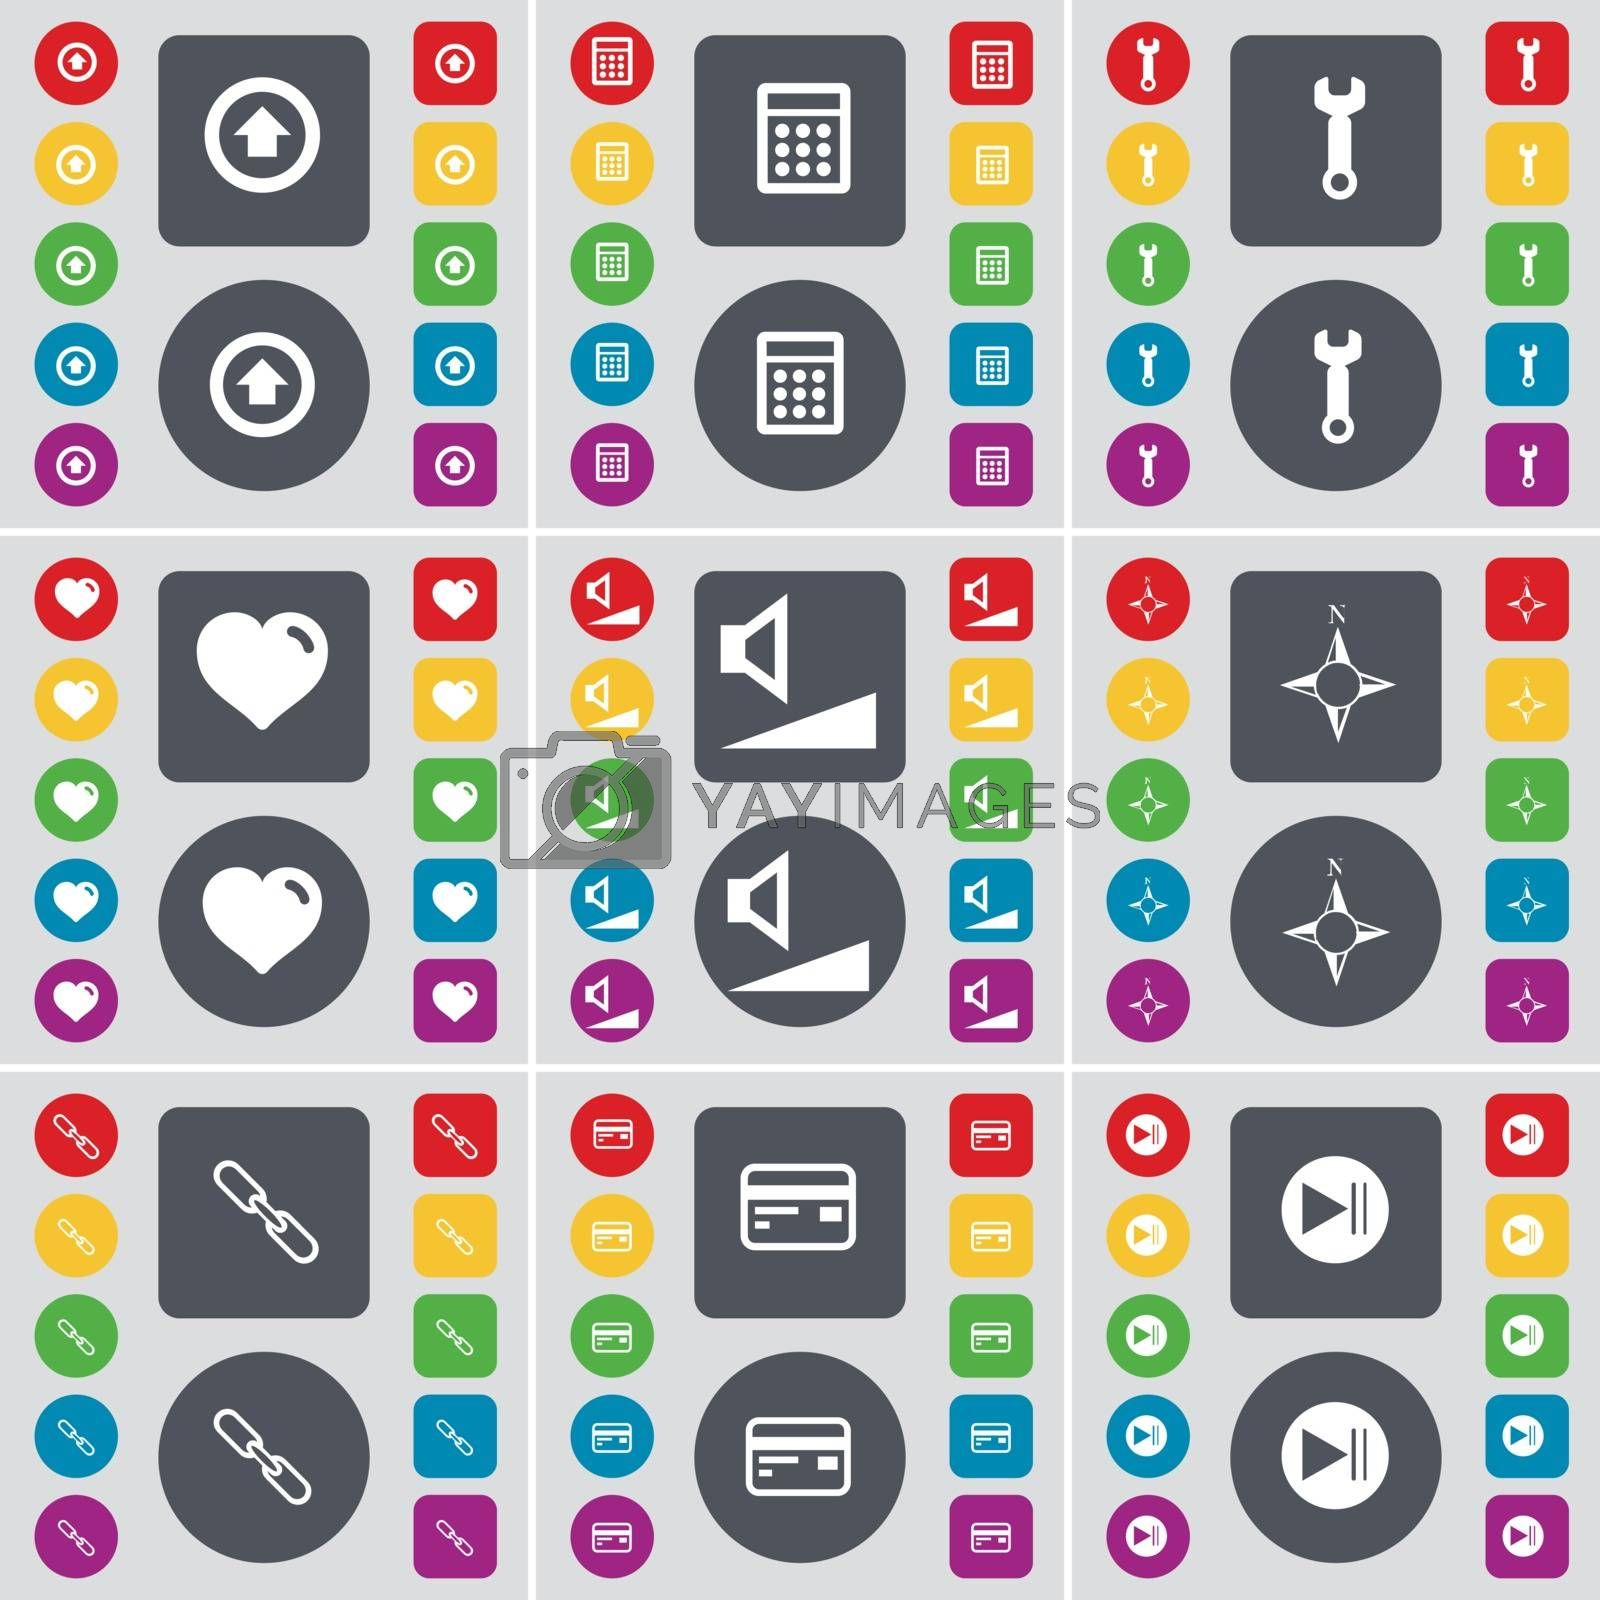 Royalty free image of Arrow up, Calculator, Wrench, Heart, Volume, Compass, Link, Credit card, Media skip icon symbol. A large set of flat, colored buttons for your design. Vector by serhii_lohvyniuk